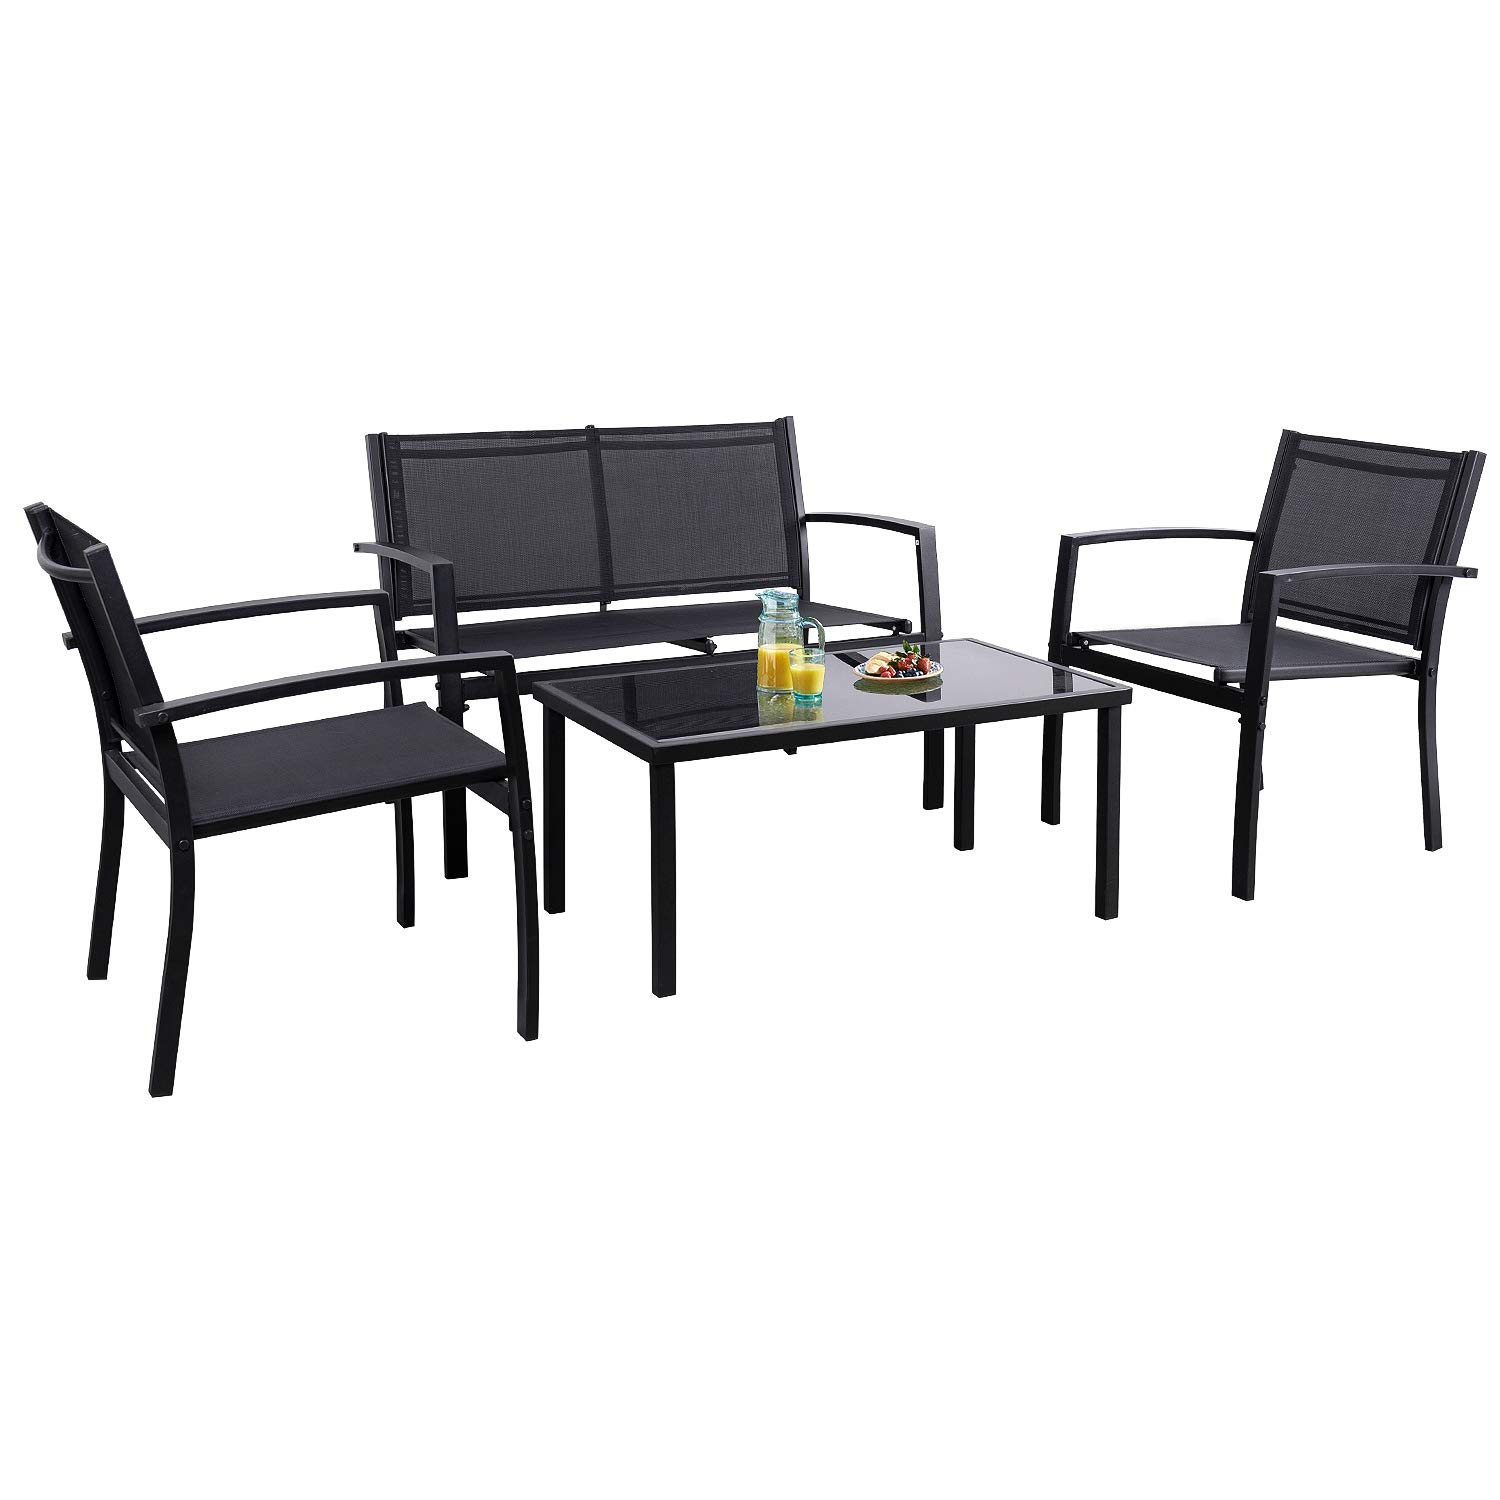 Flamaker 4 Pieces Patio Furniture Outdoor furniture Outdoor Patio Furniture Set Textilene Bistro Set Modern Conversation Set Black Bistro Set with Loveseat Tea Table for Home, Lawn and Balcony (Black) by Flamaker